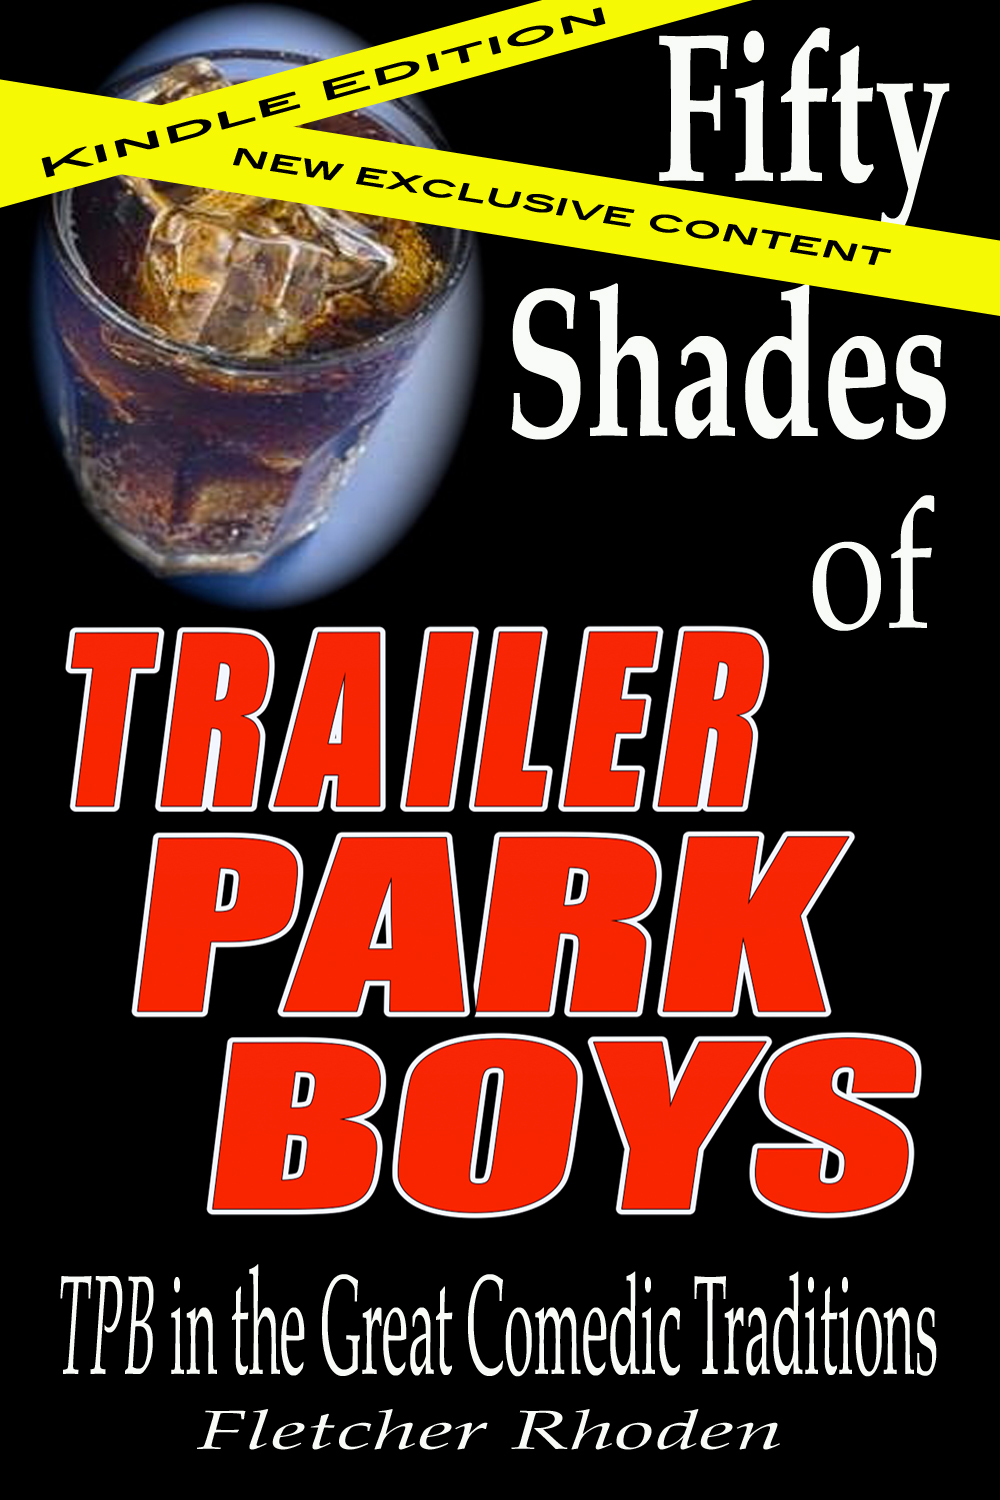 fifty shades of trailer park boys   books to read photo